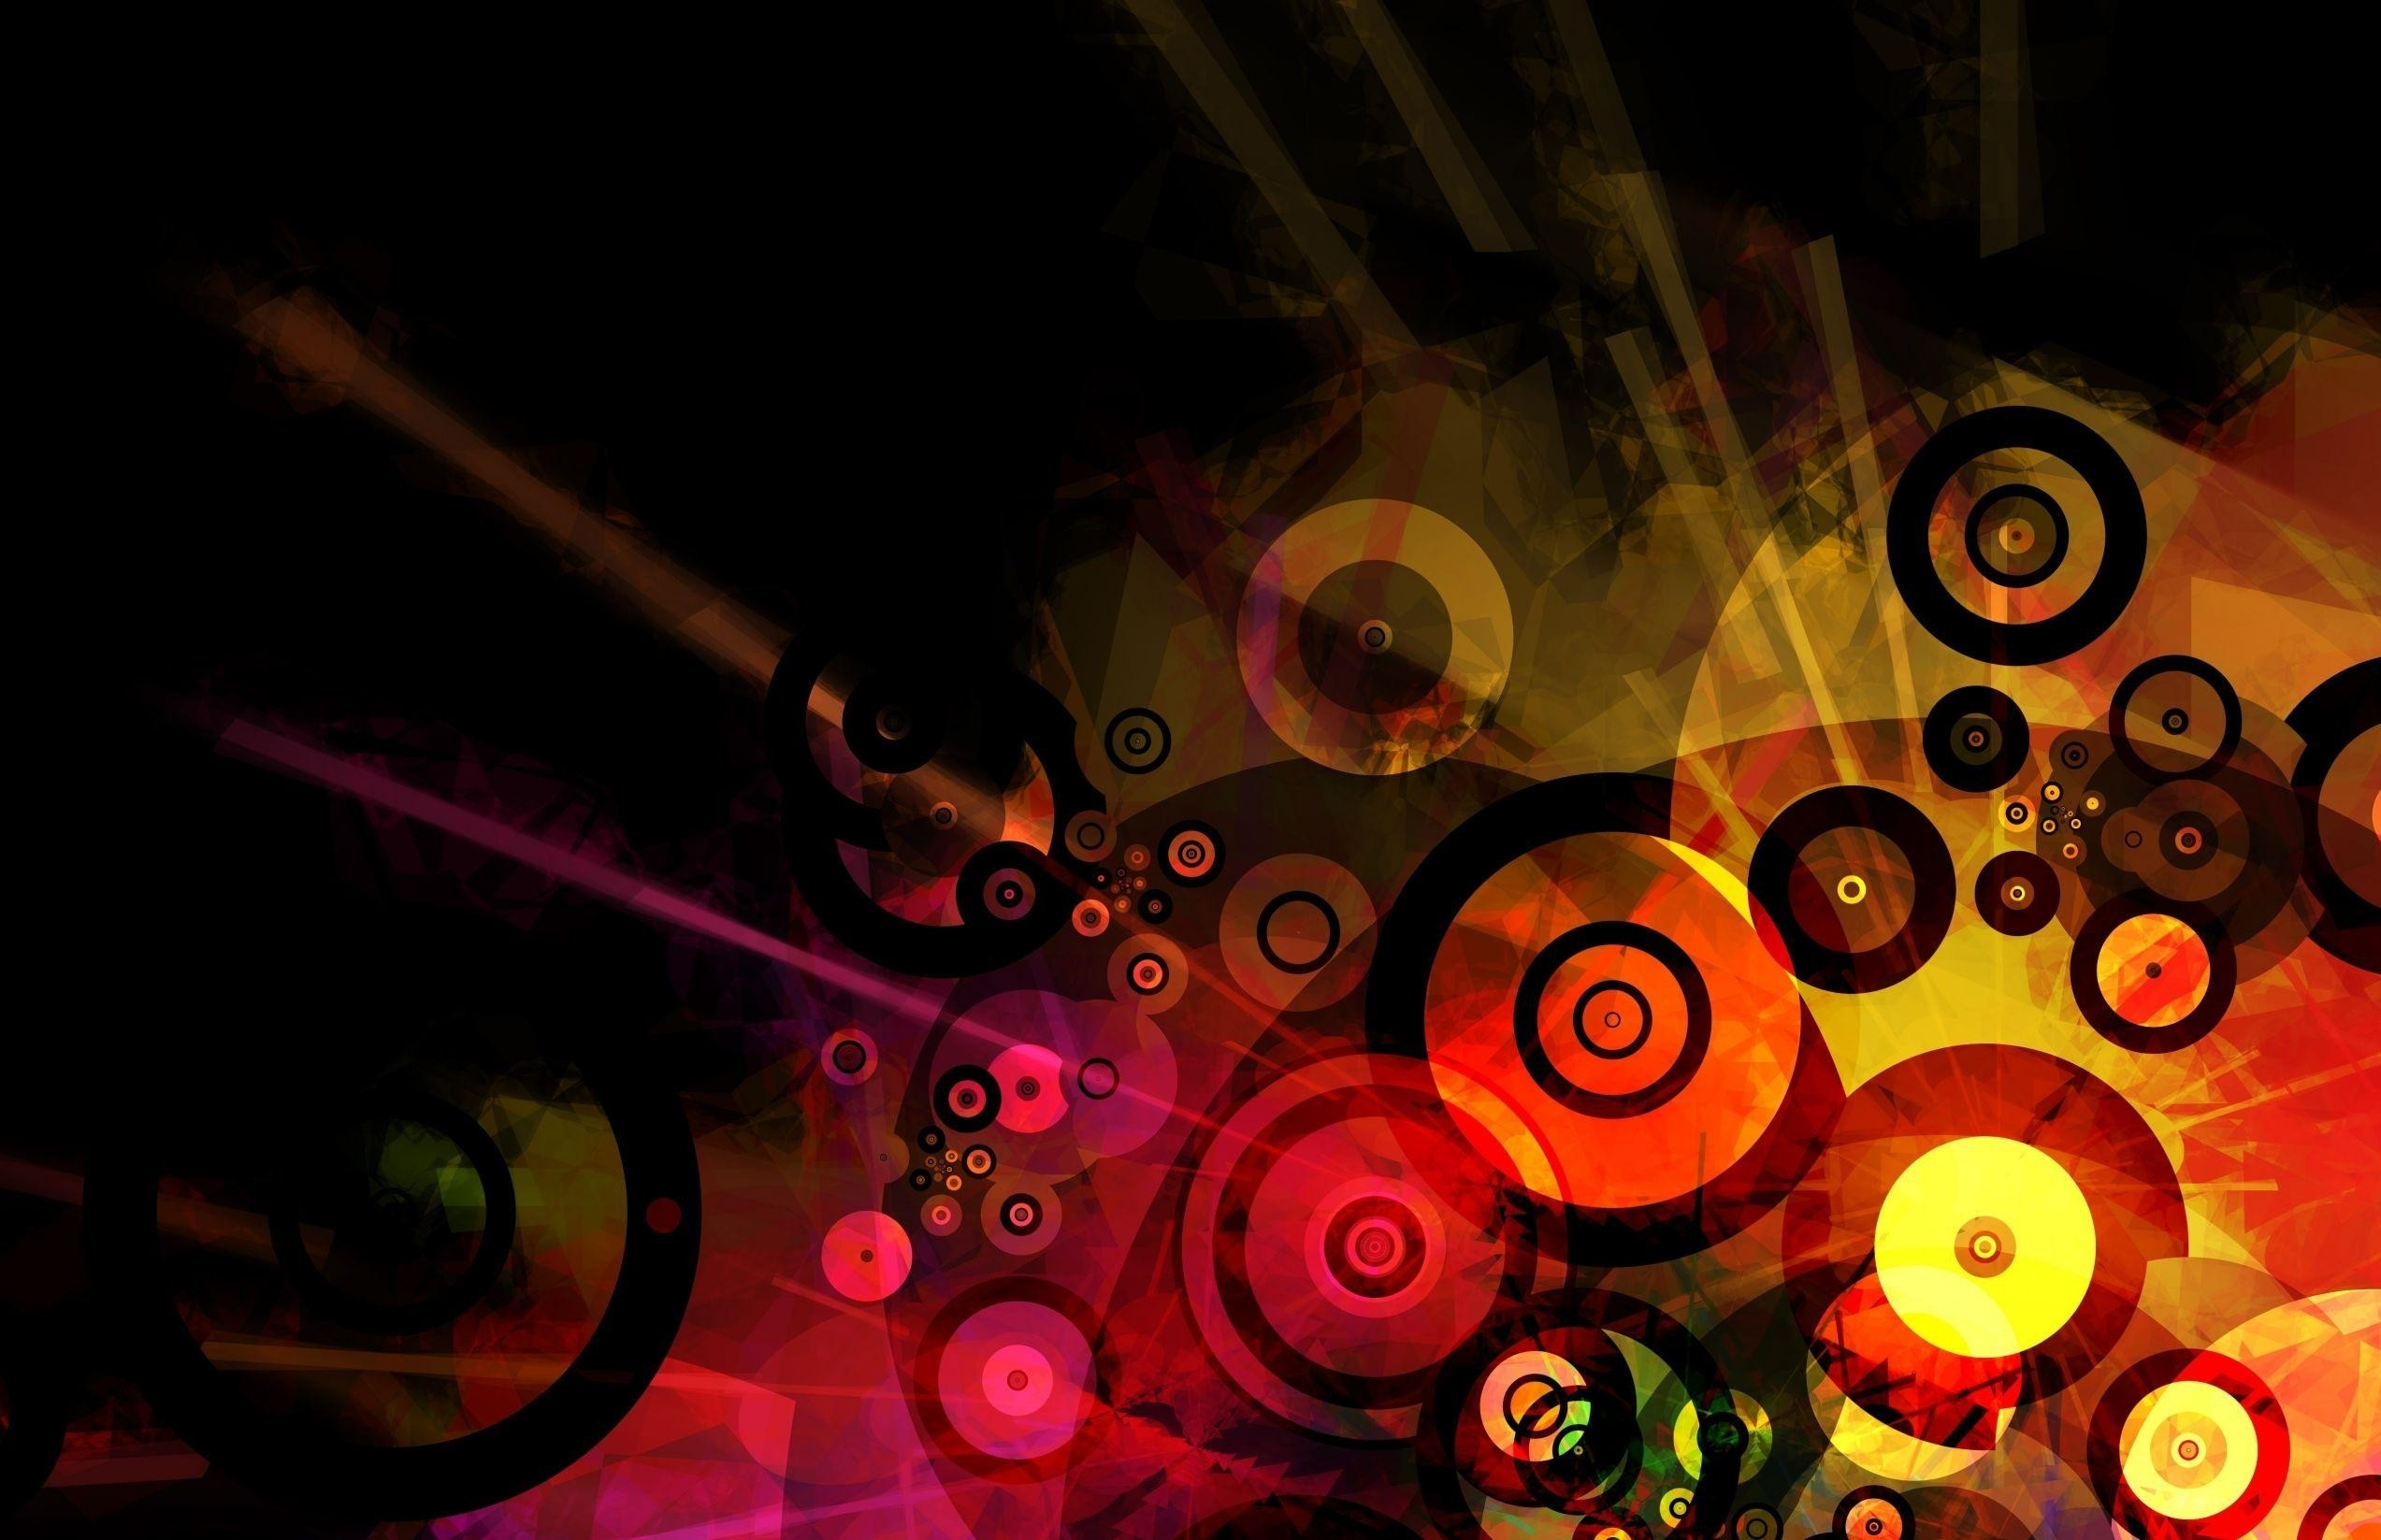 hip hop background ·① download free beautiful high resolution